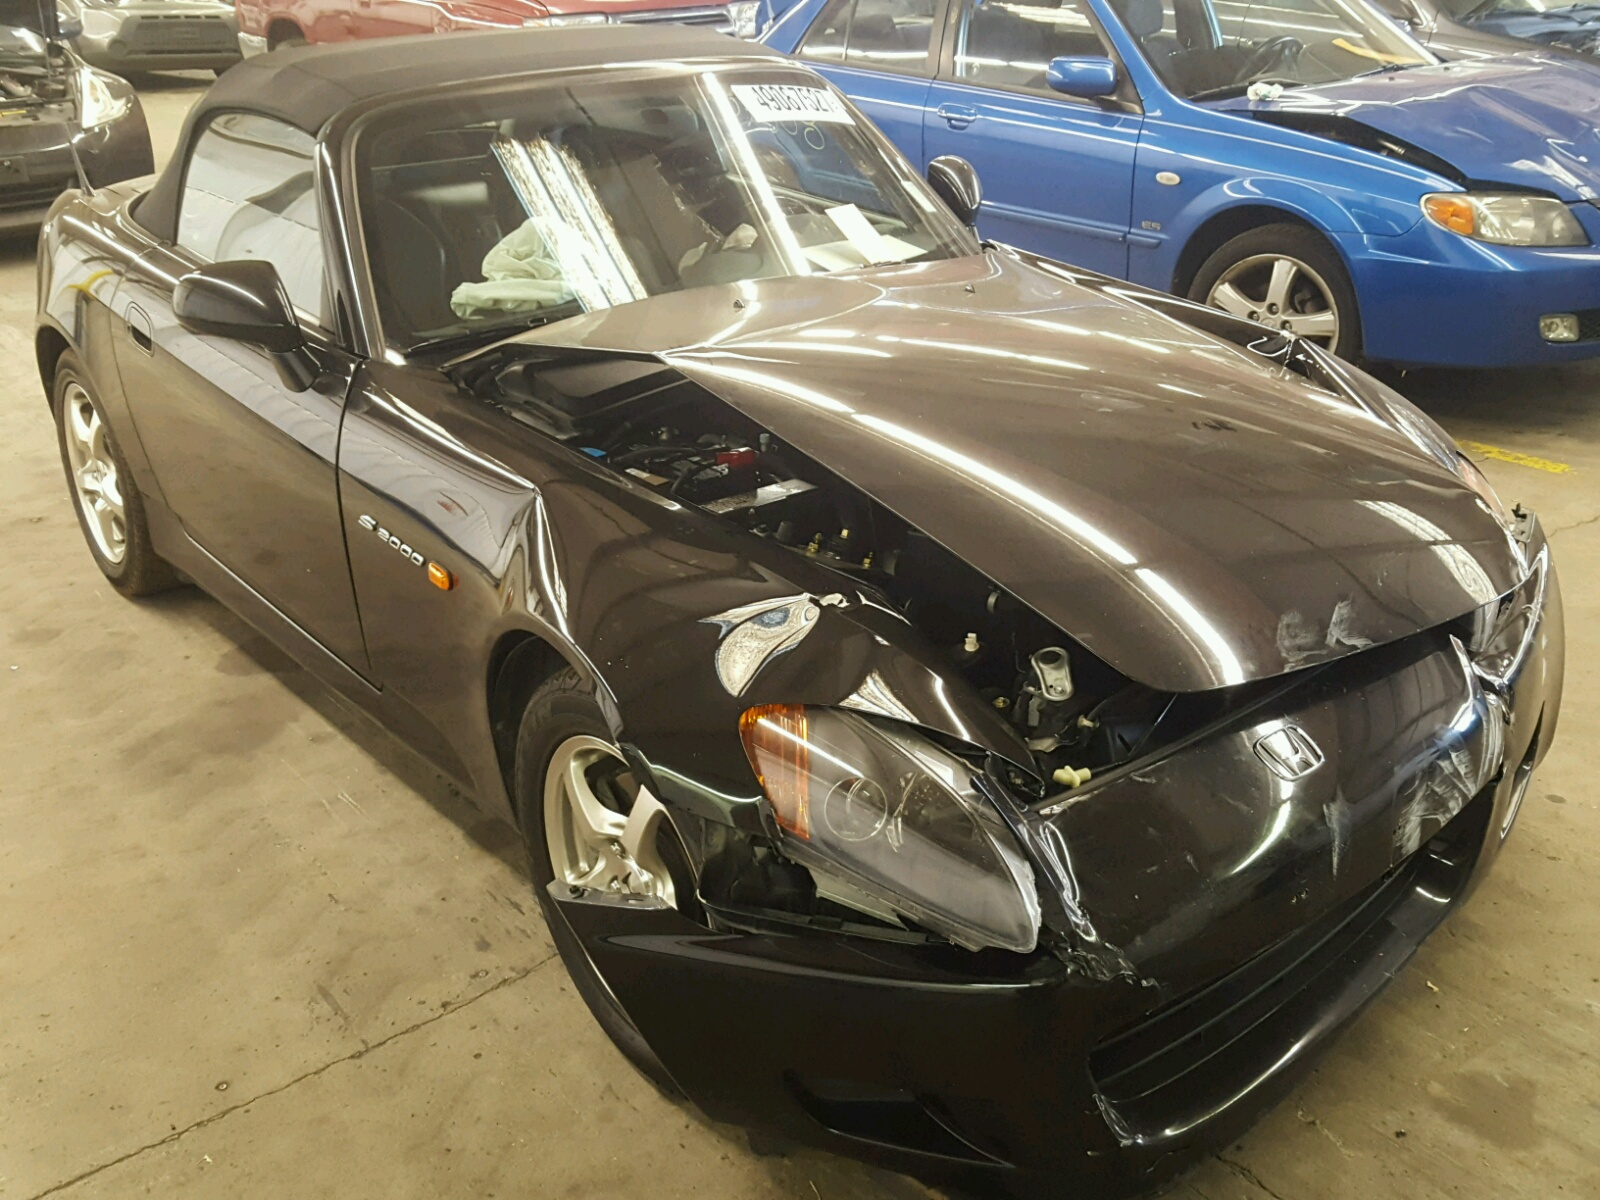 Salvage 2002 Honda S2000 for sale